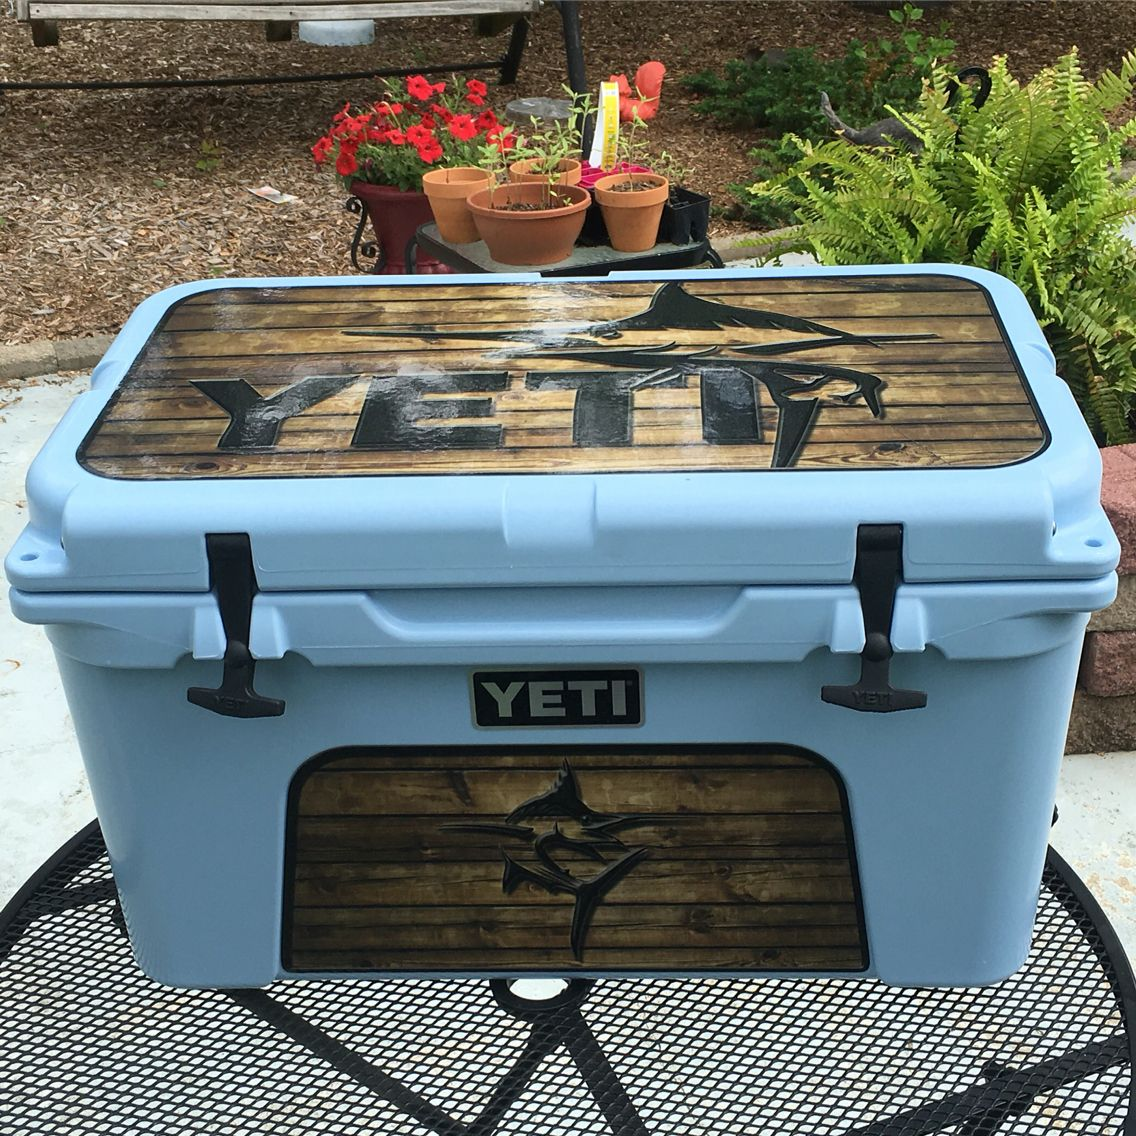 Pin By Cns Title Company Inc On Cool Items In 2020 Yeti Cooler Wraps Yeti Cooler Stickers Yeti Cooler